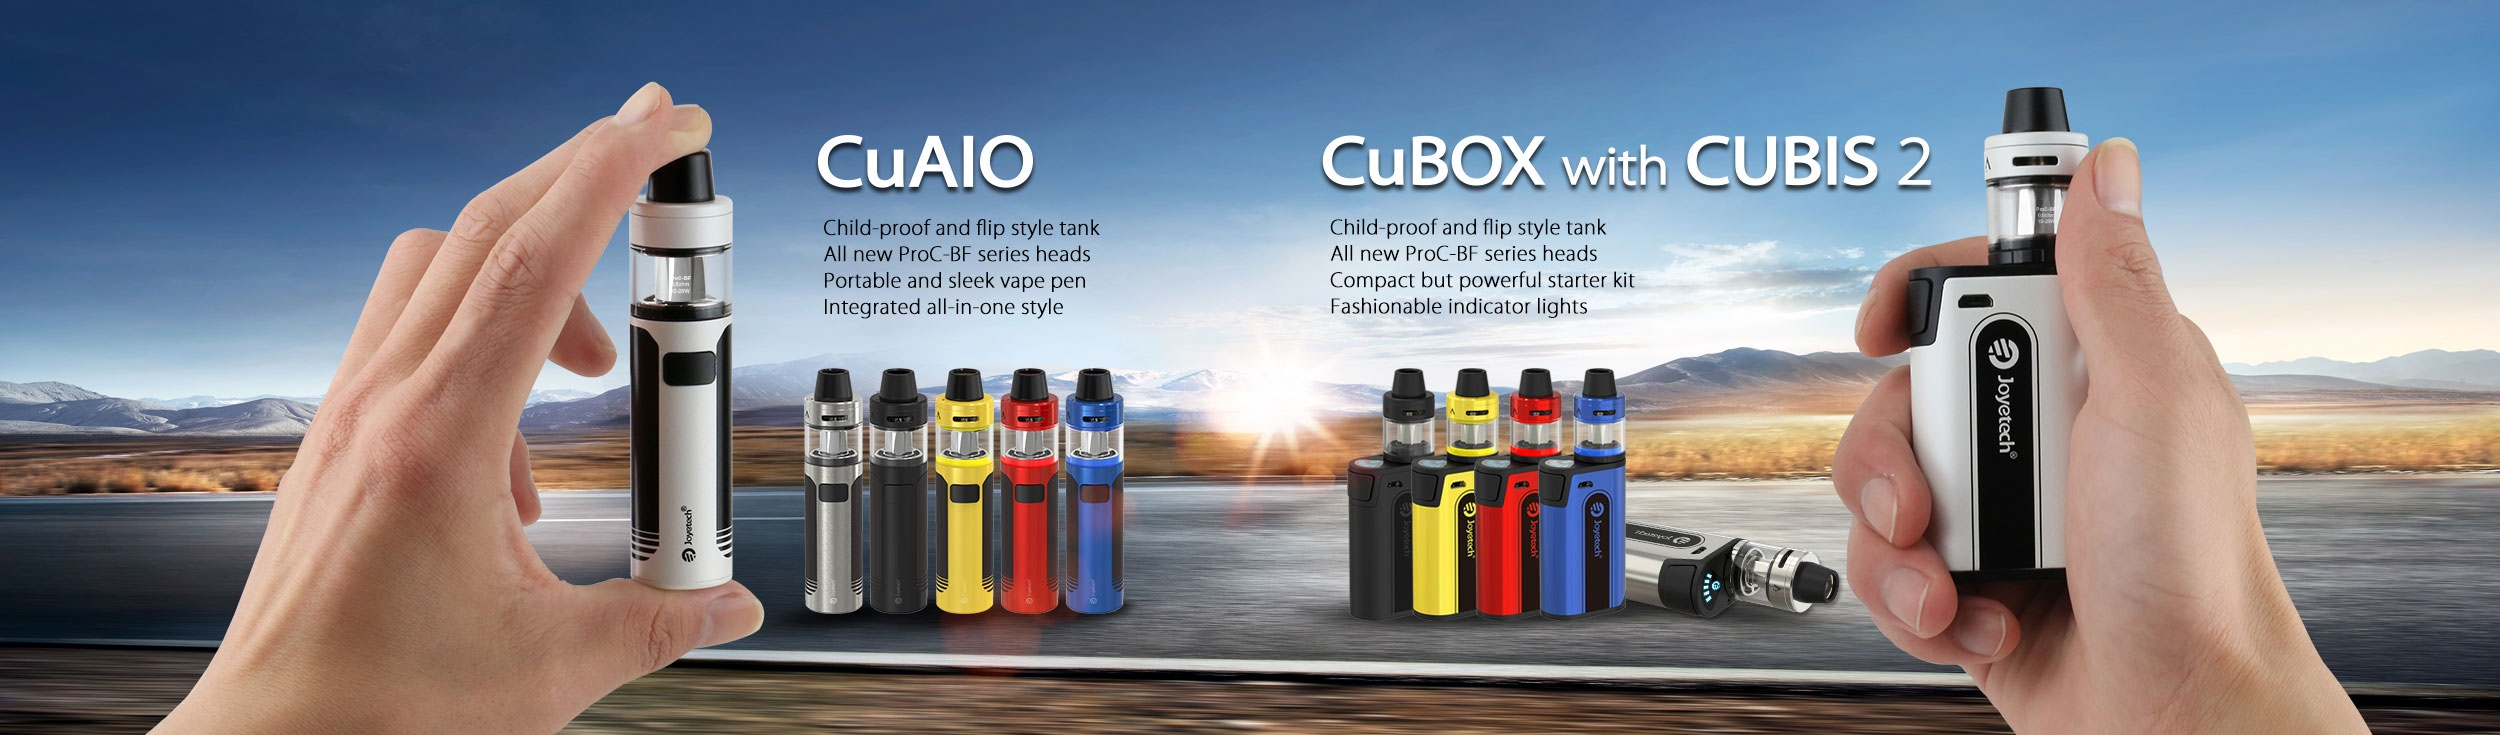 joyetech-cubox-grip-full-kit-s-cubis-2-3000mah-elektronicka-cigareta